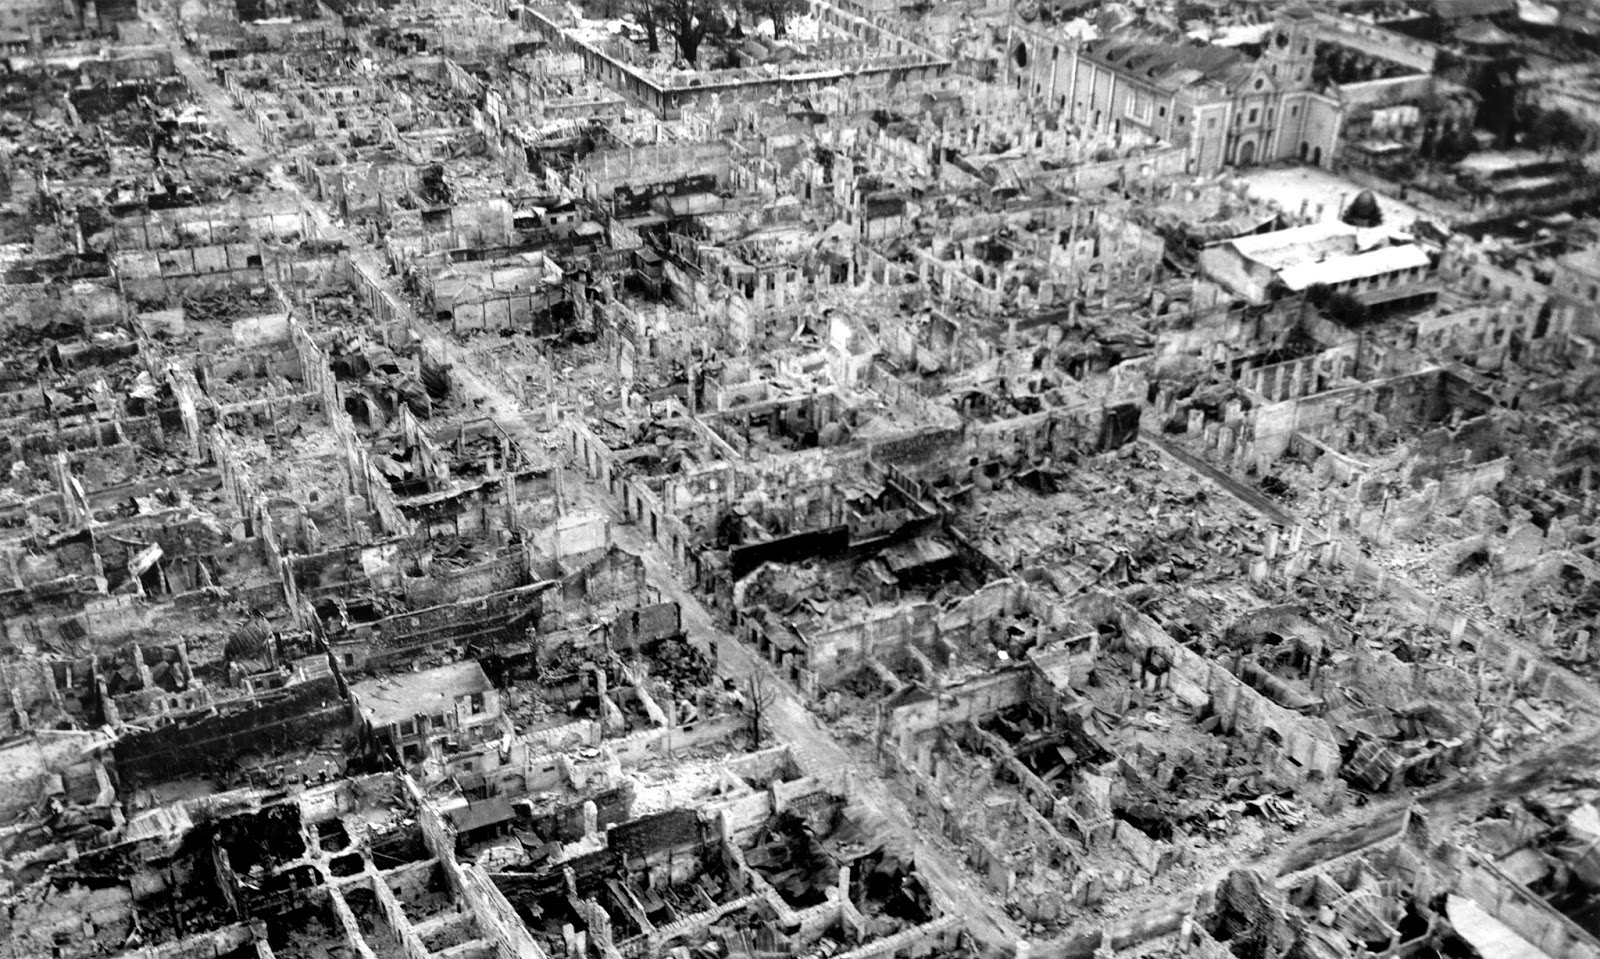 File:Manila Walled City Destruction May 1945.jpg - Wikipedia, the free ...